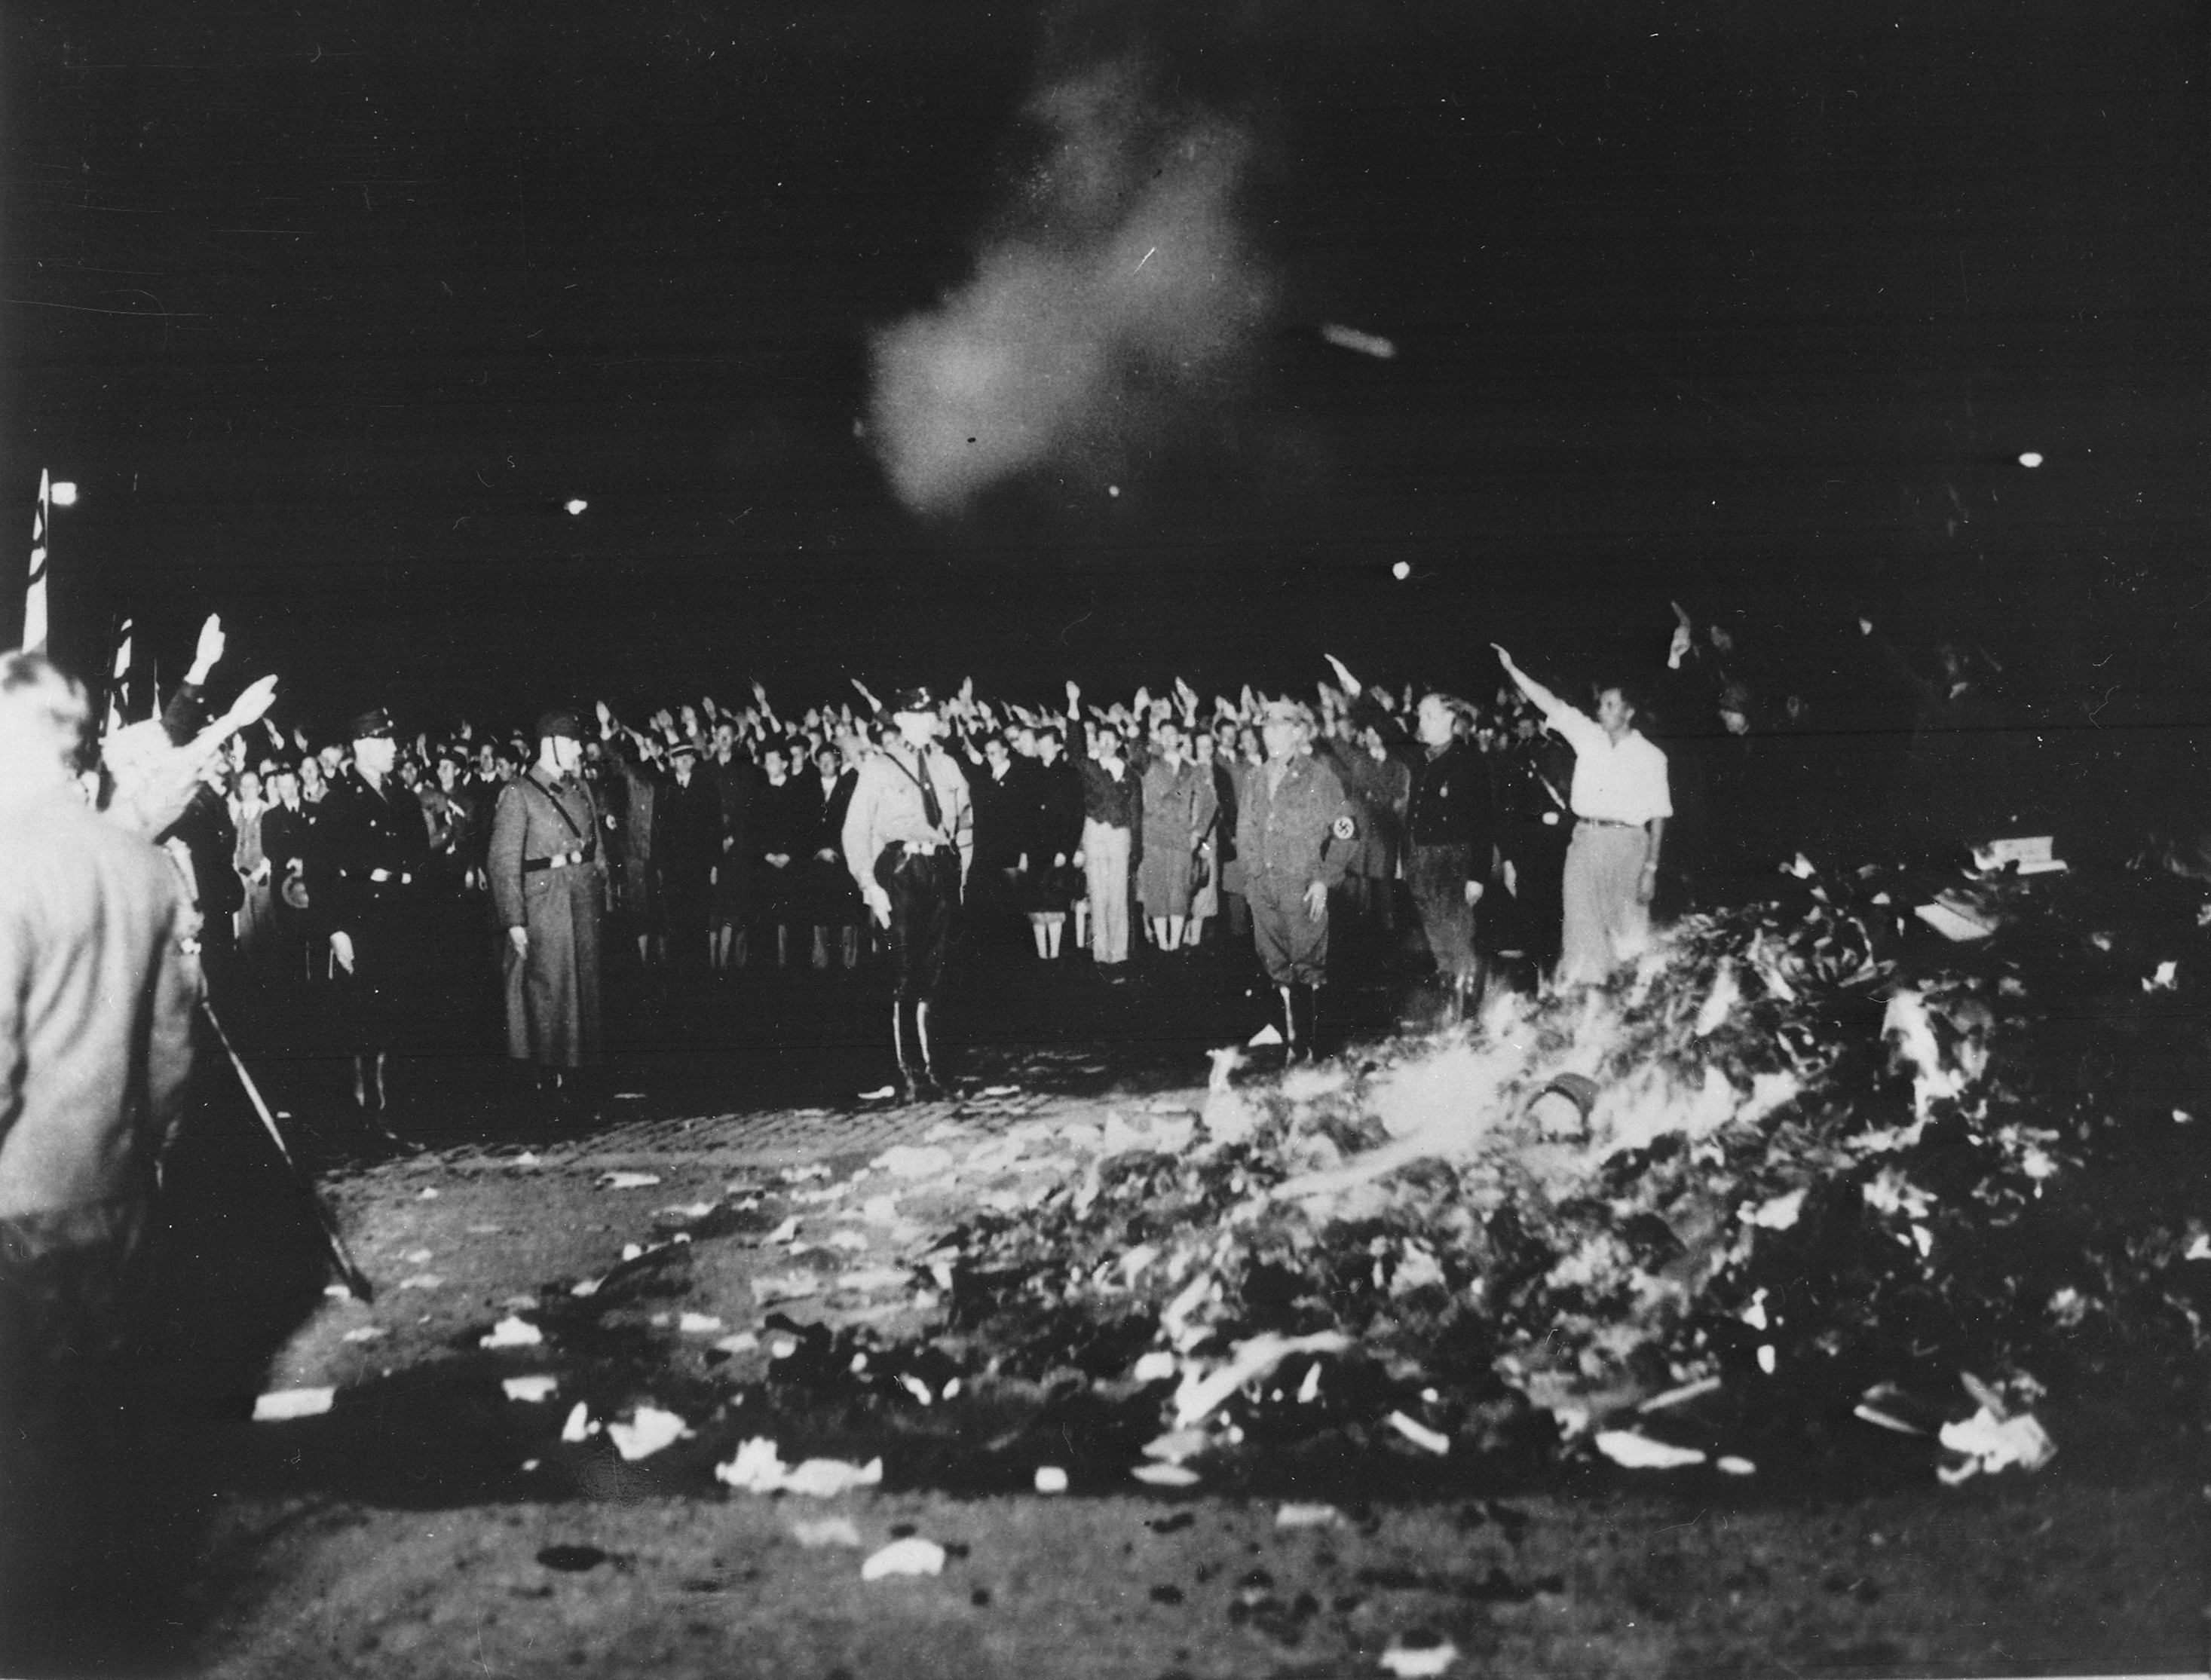 Book burning on 11 May 1933 in Berlin.